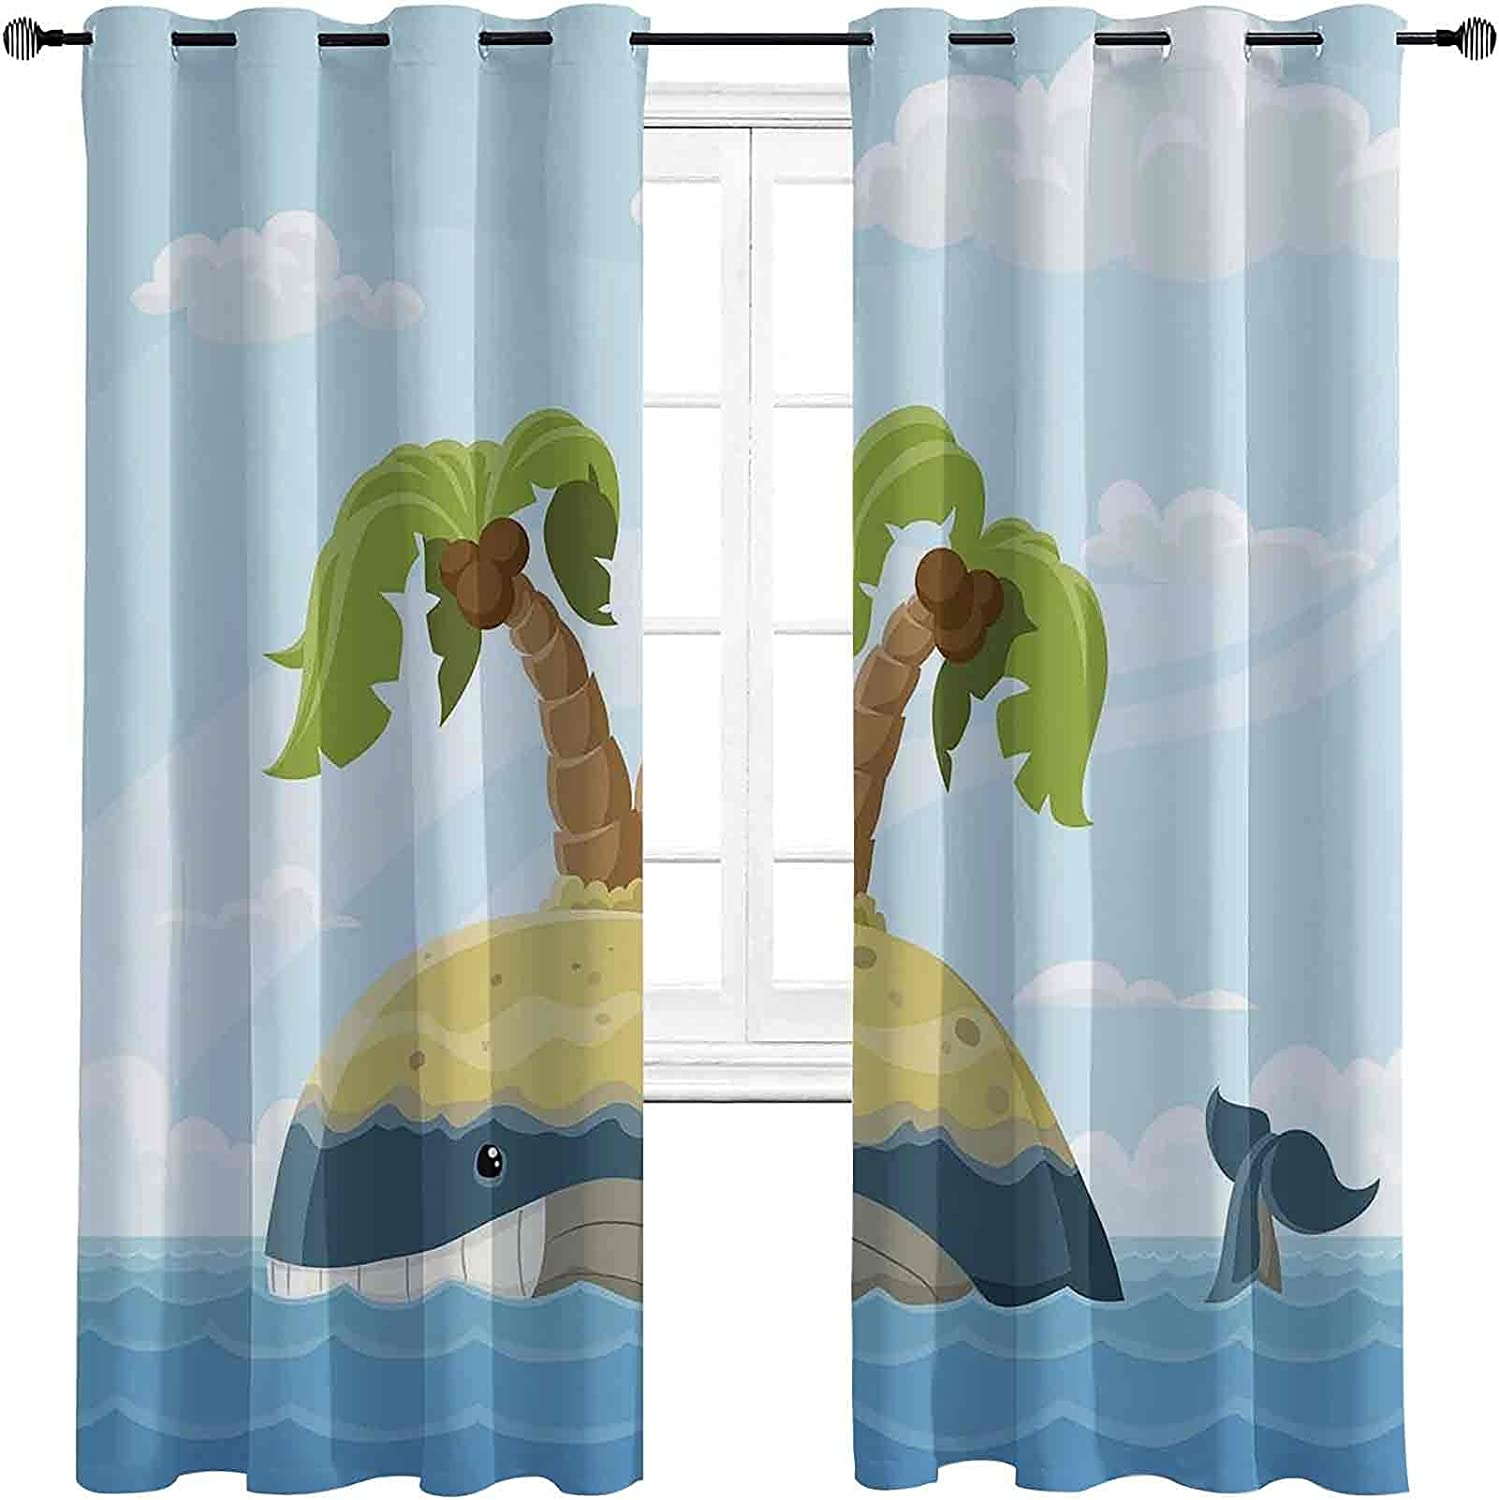 Max 43% OFF Fish Blackout Curtains with Cartoon Grommets Whale store darken